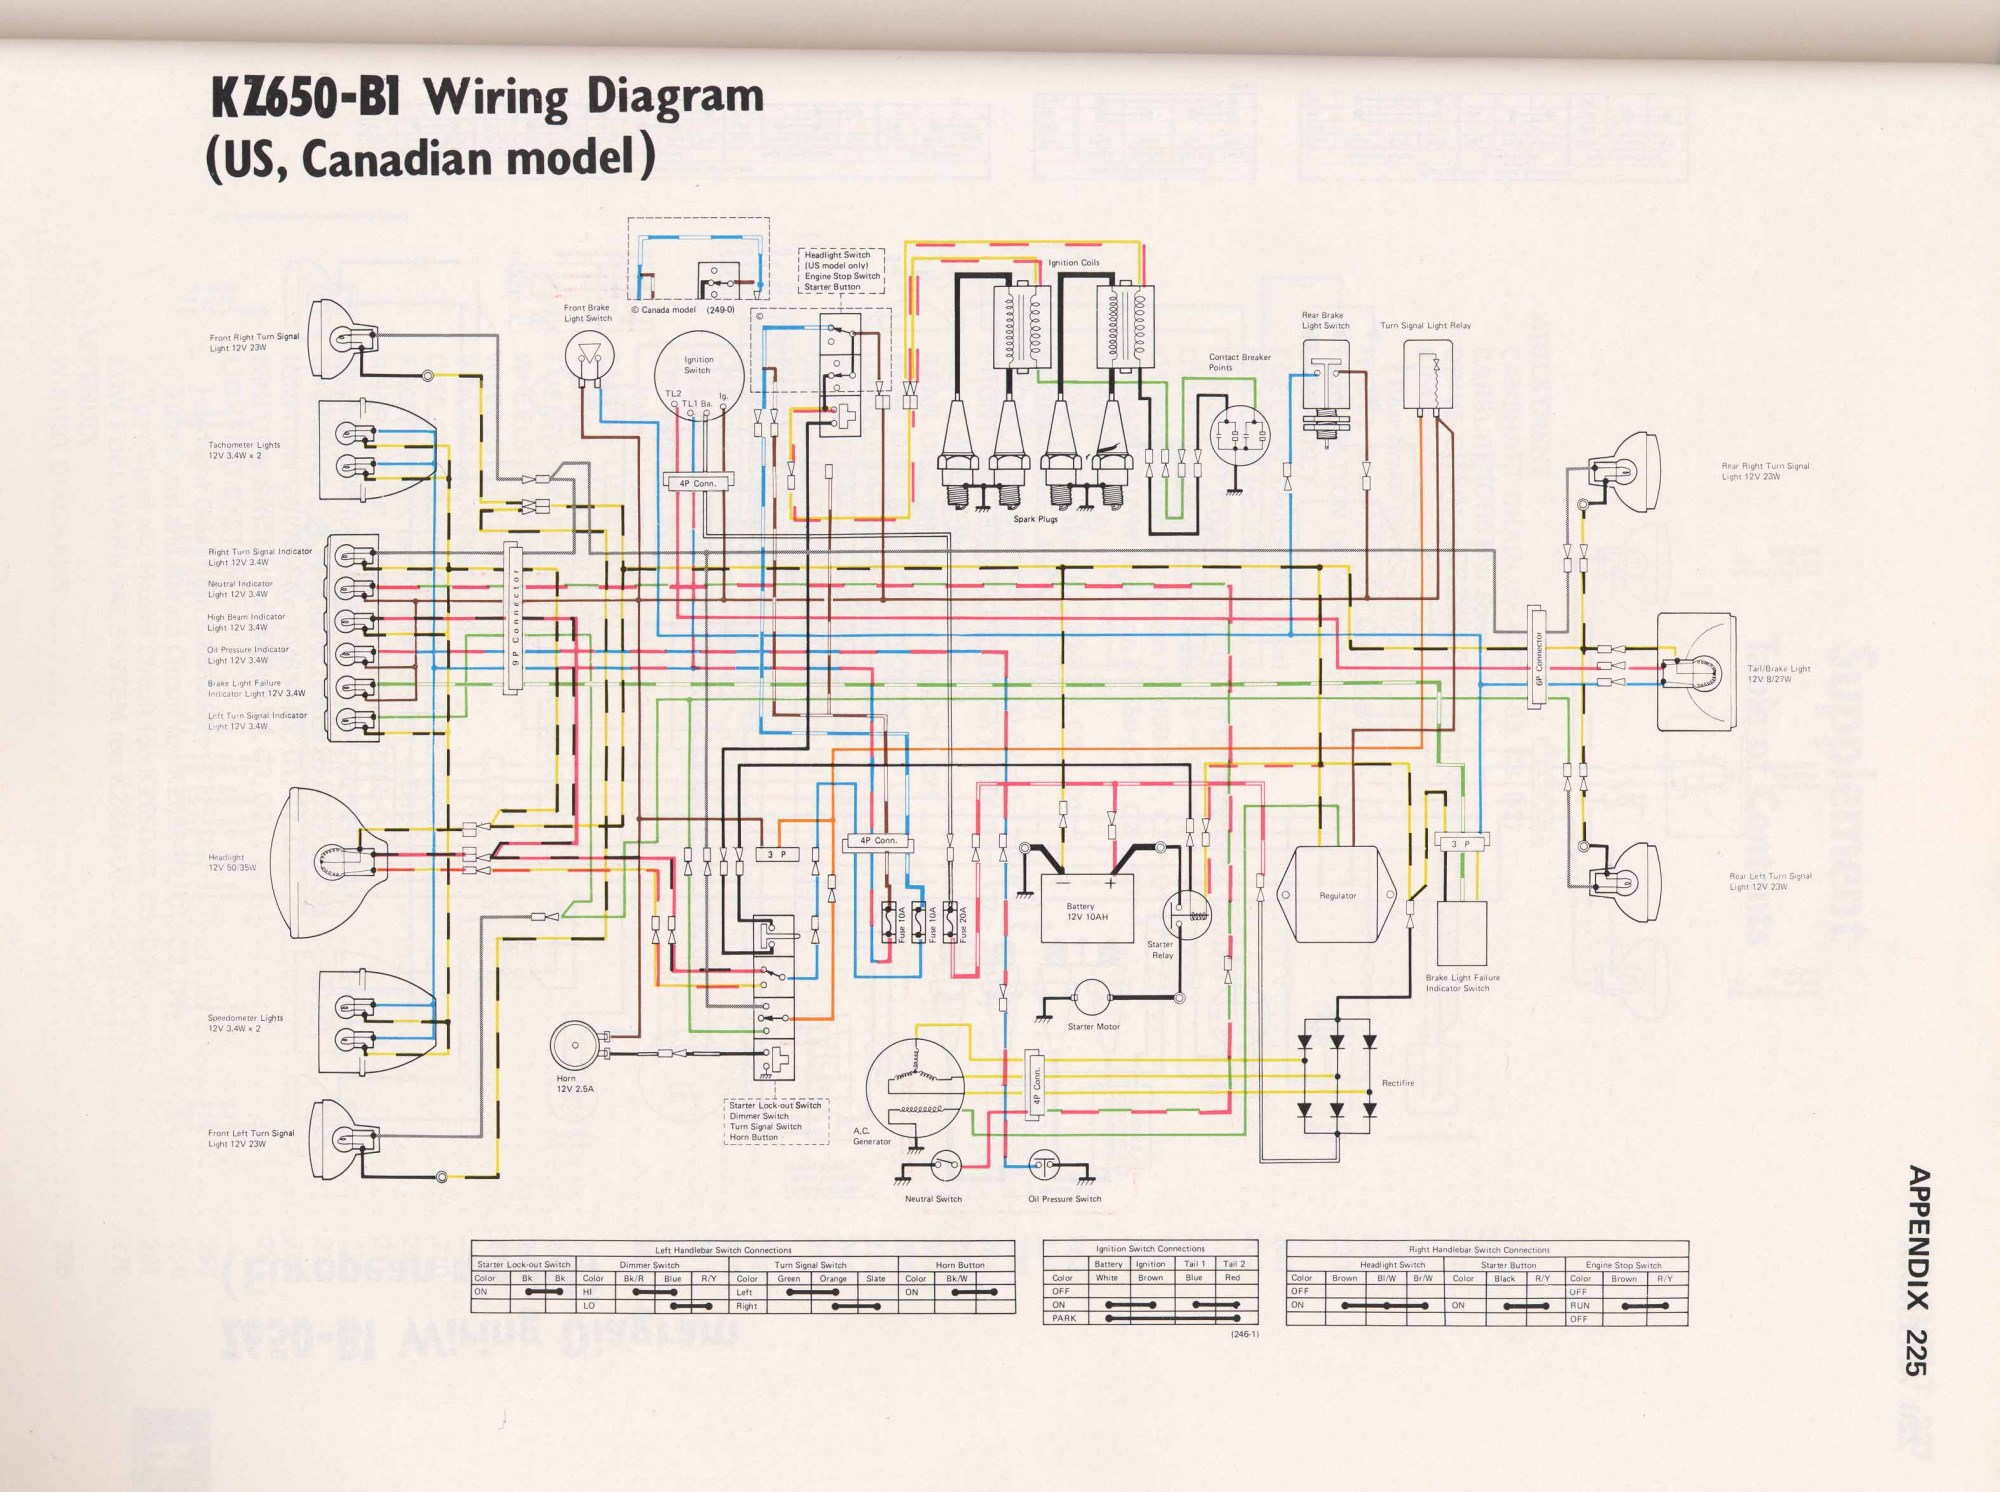 hight resolution of kz650 info wiring diagrams basic house wiring diagrams 1982 kz650h wiring diagram